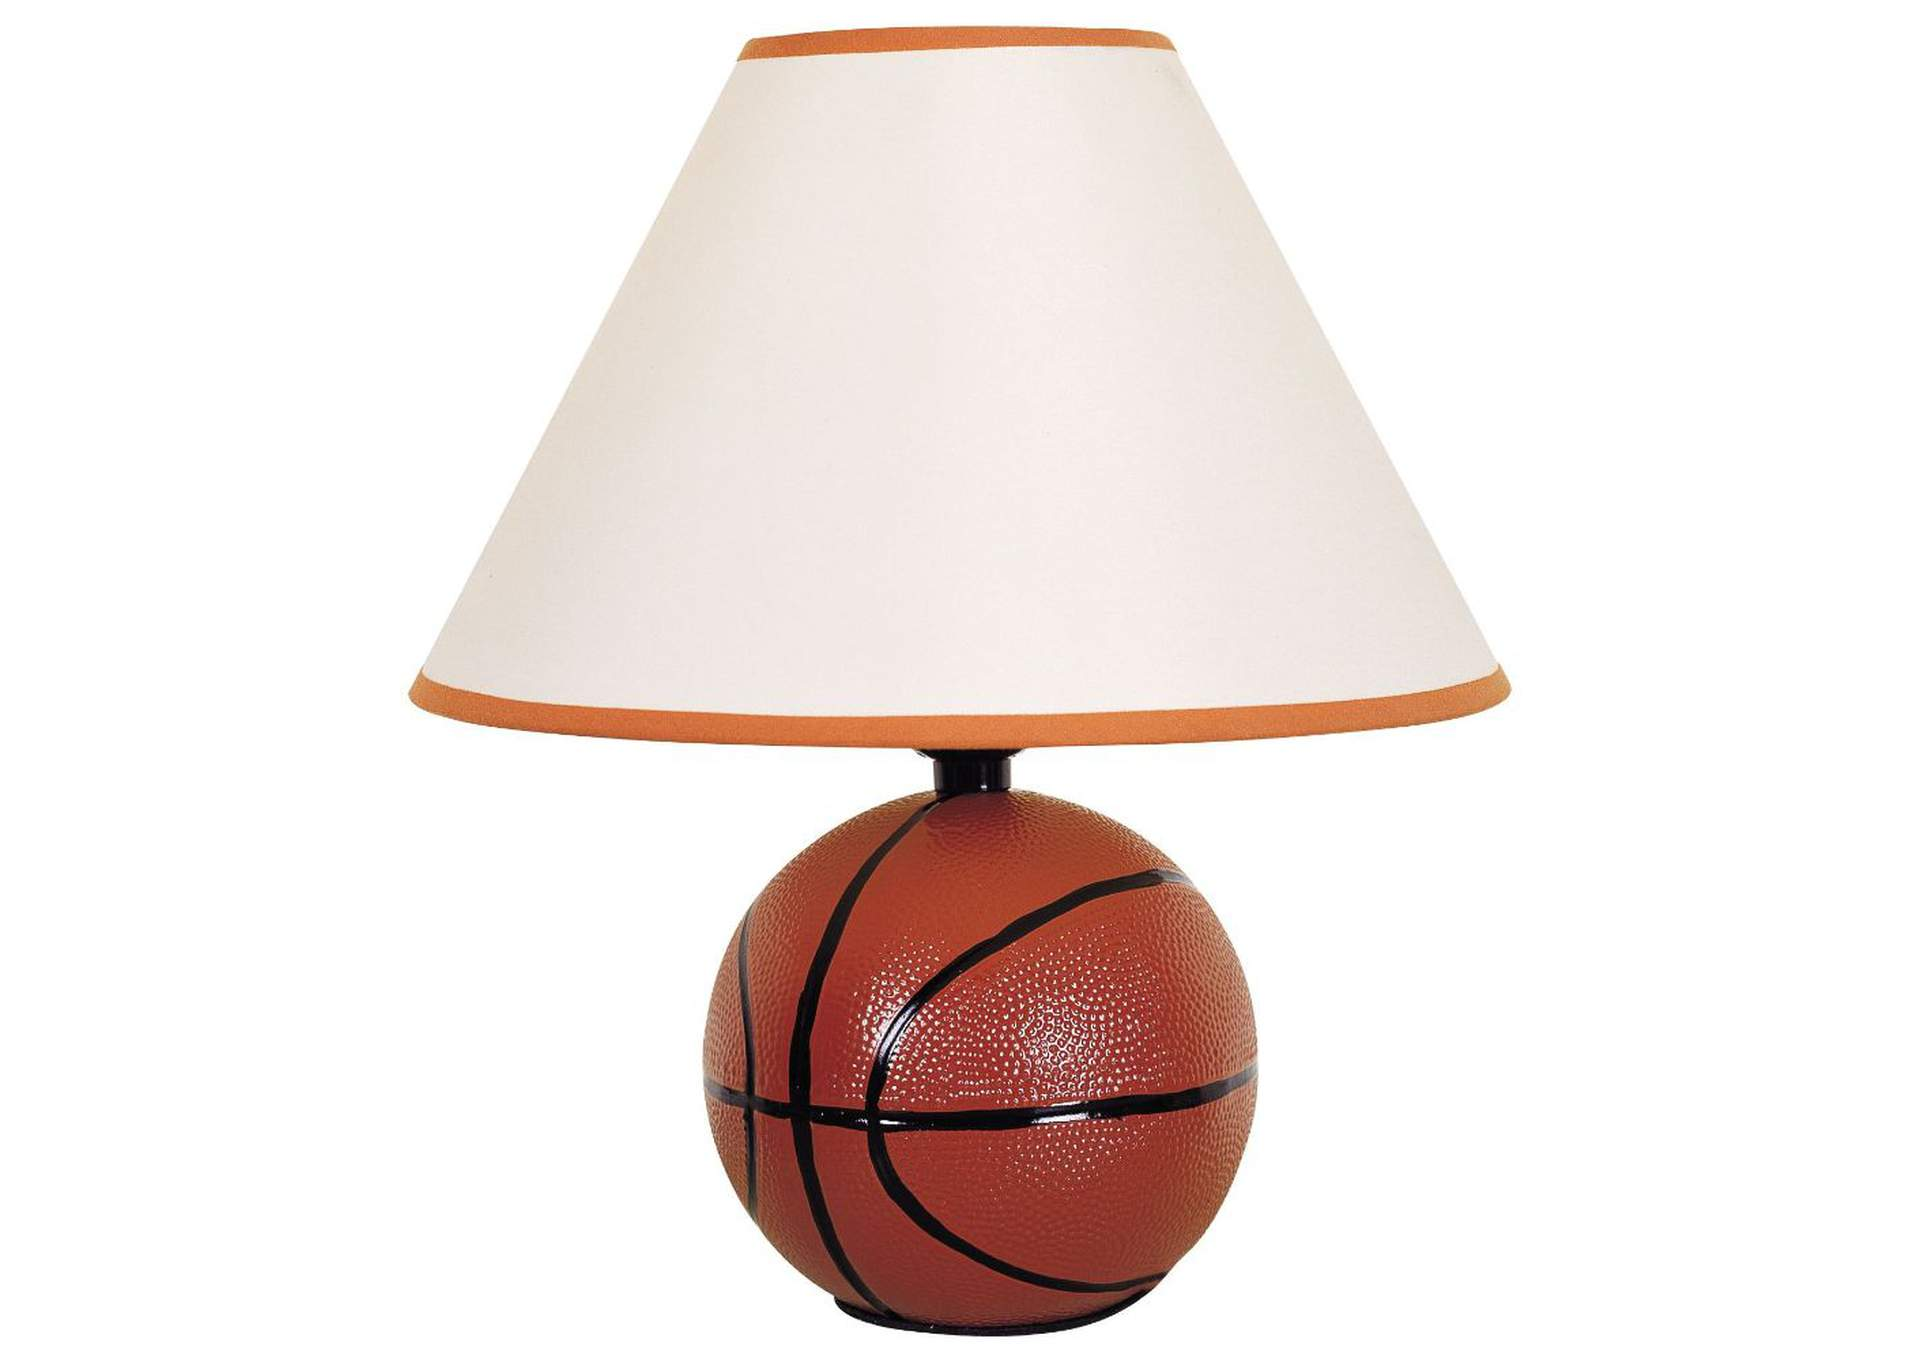 Superb Just Furniture All Star Basketball Table Lamp Set Of 8 Unemploymentrelief Wooden Chair Designs For Living Room Unemploymentrelieforg